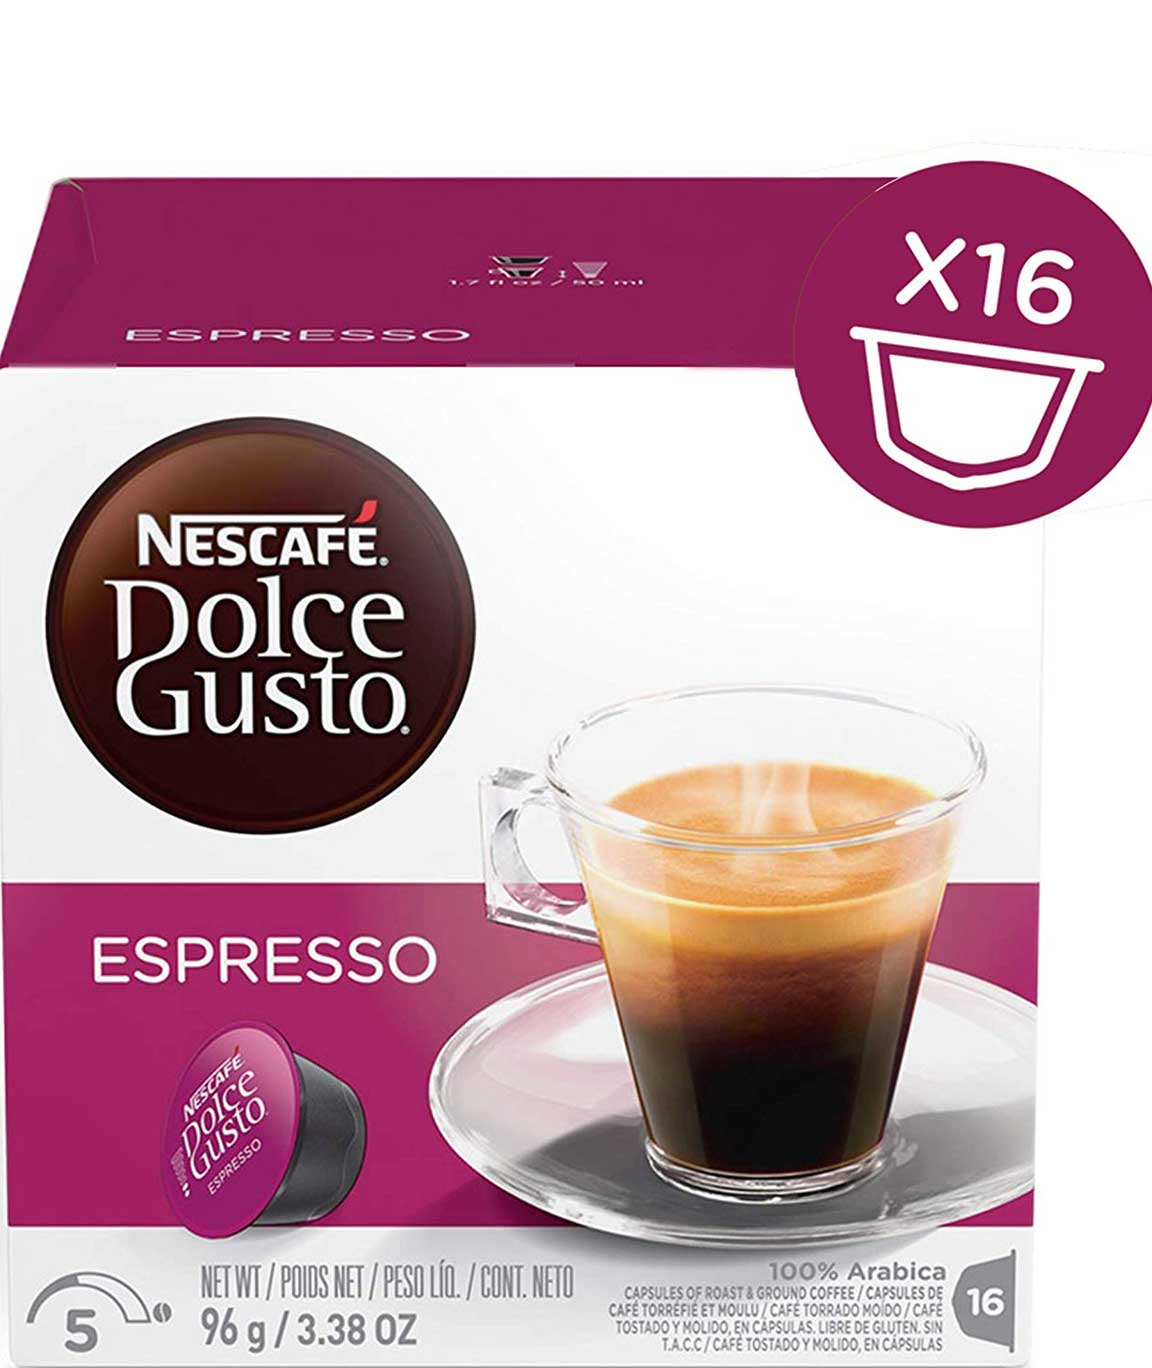 NESCAFE Dolce Gusto Espresso Coffee Pods, 16 Capsules (Pack of 3 - Total 48 Capsules, 48 Servings)